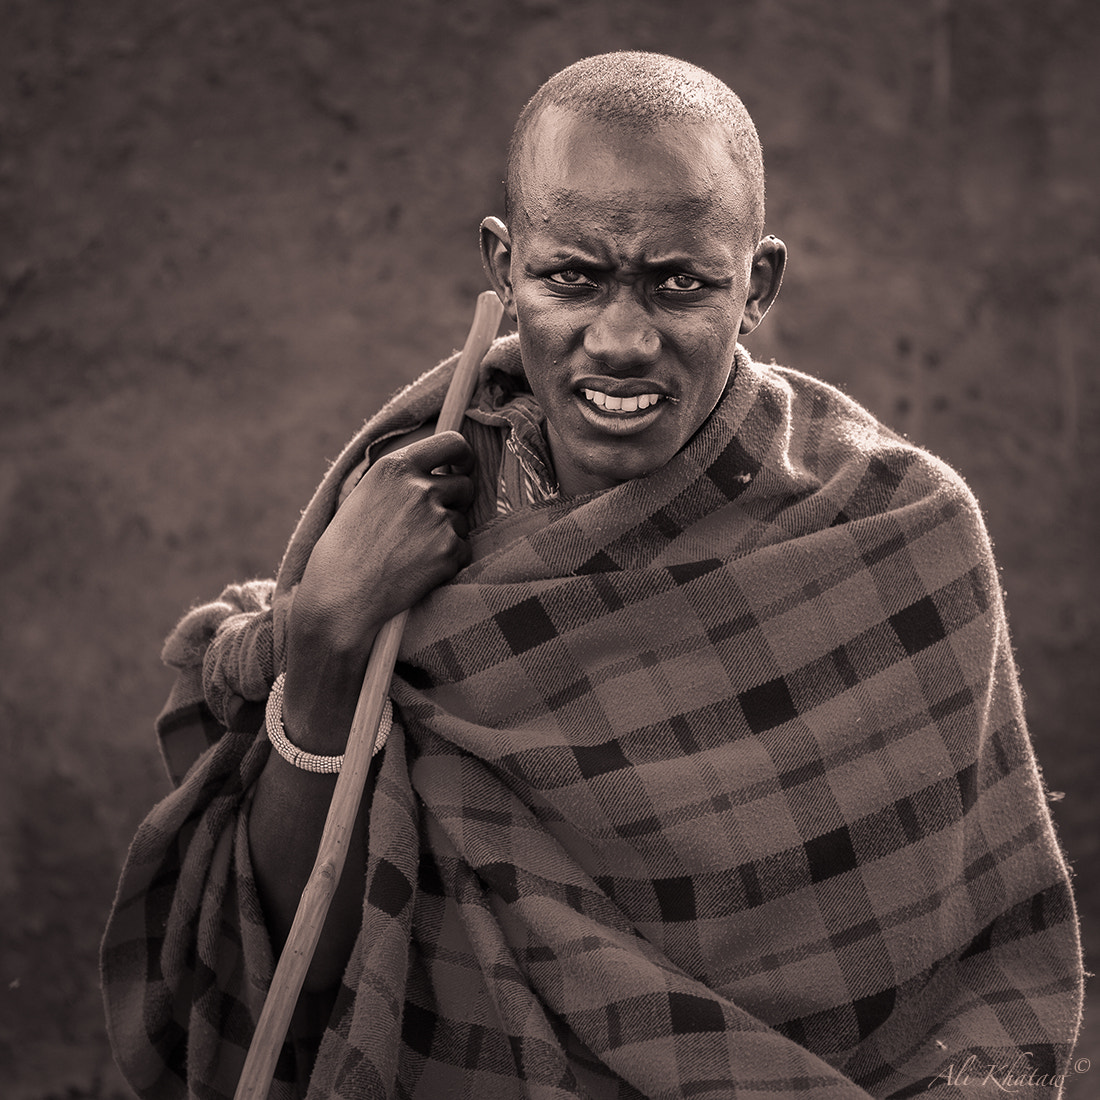 Photograph Masai Man by Ali Khataw on 500px